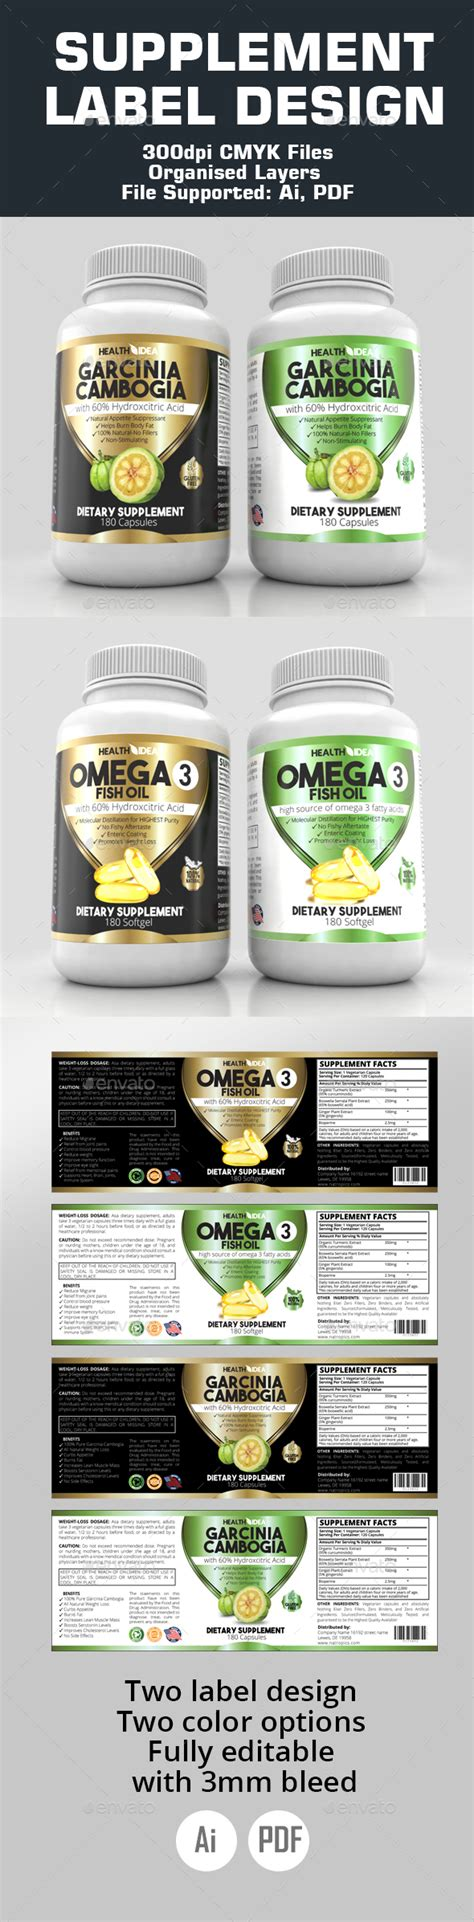 free product label design templates product label design templates free image collections